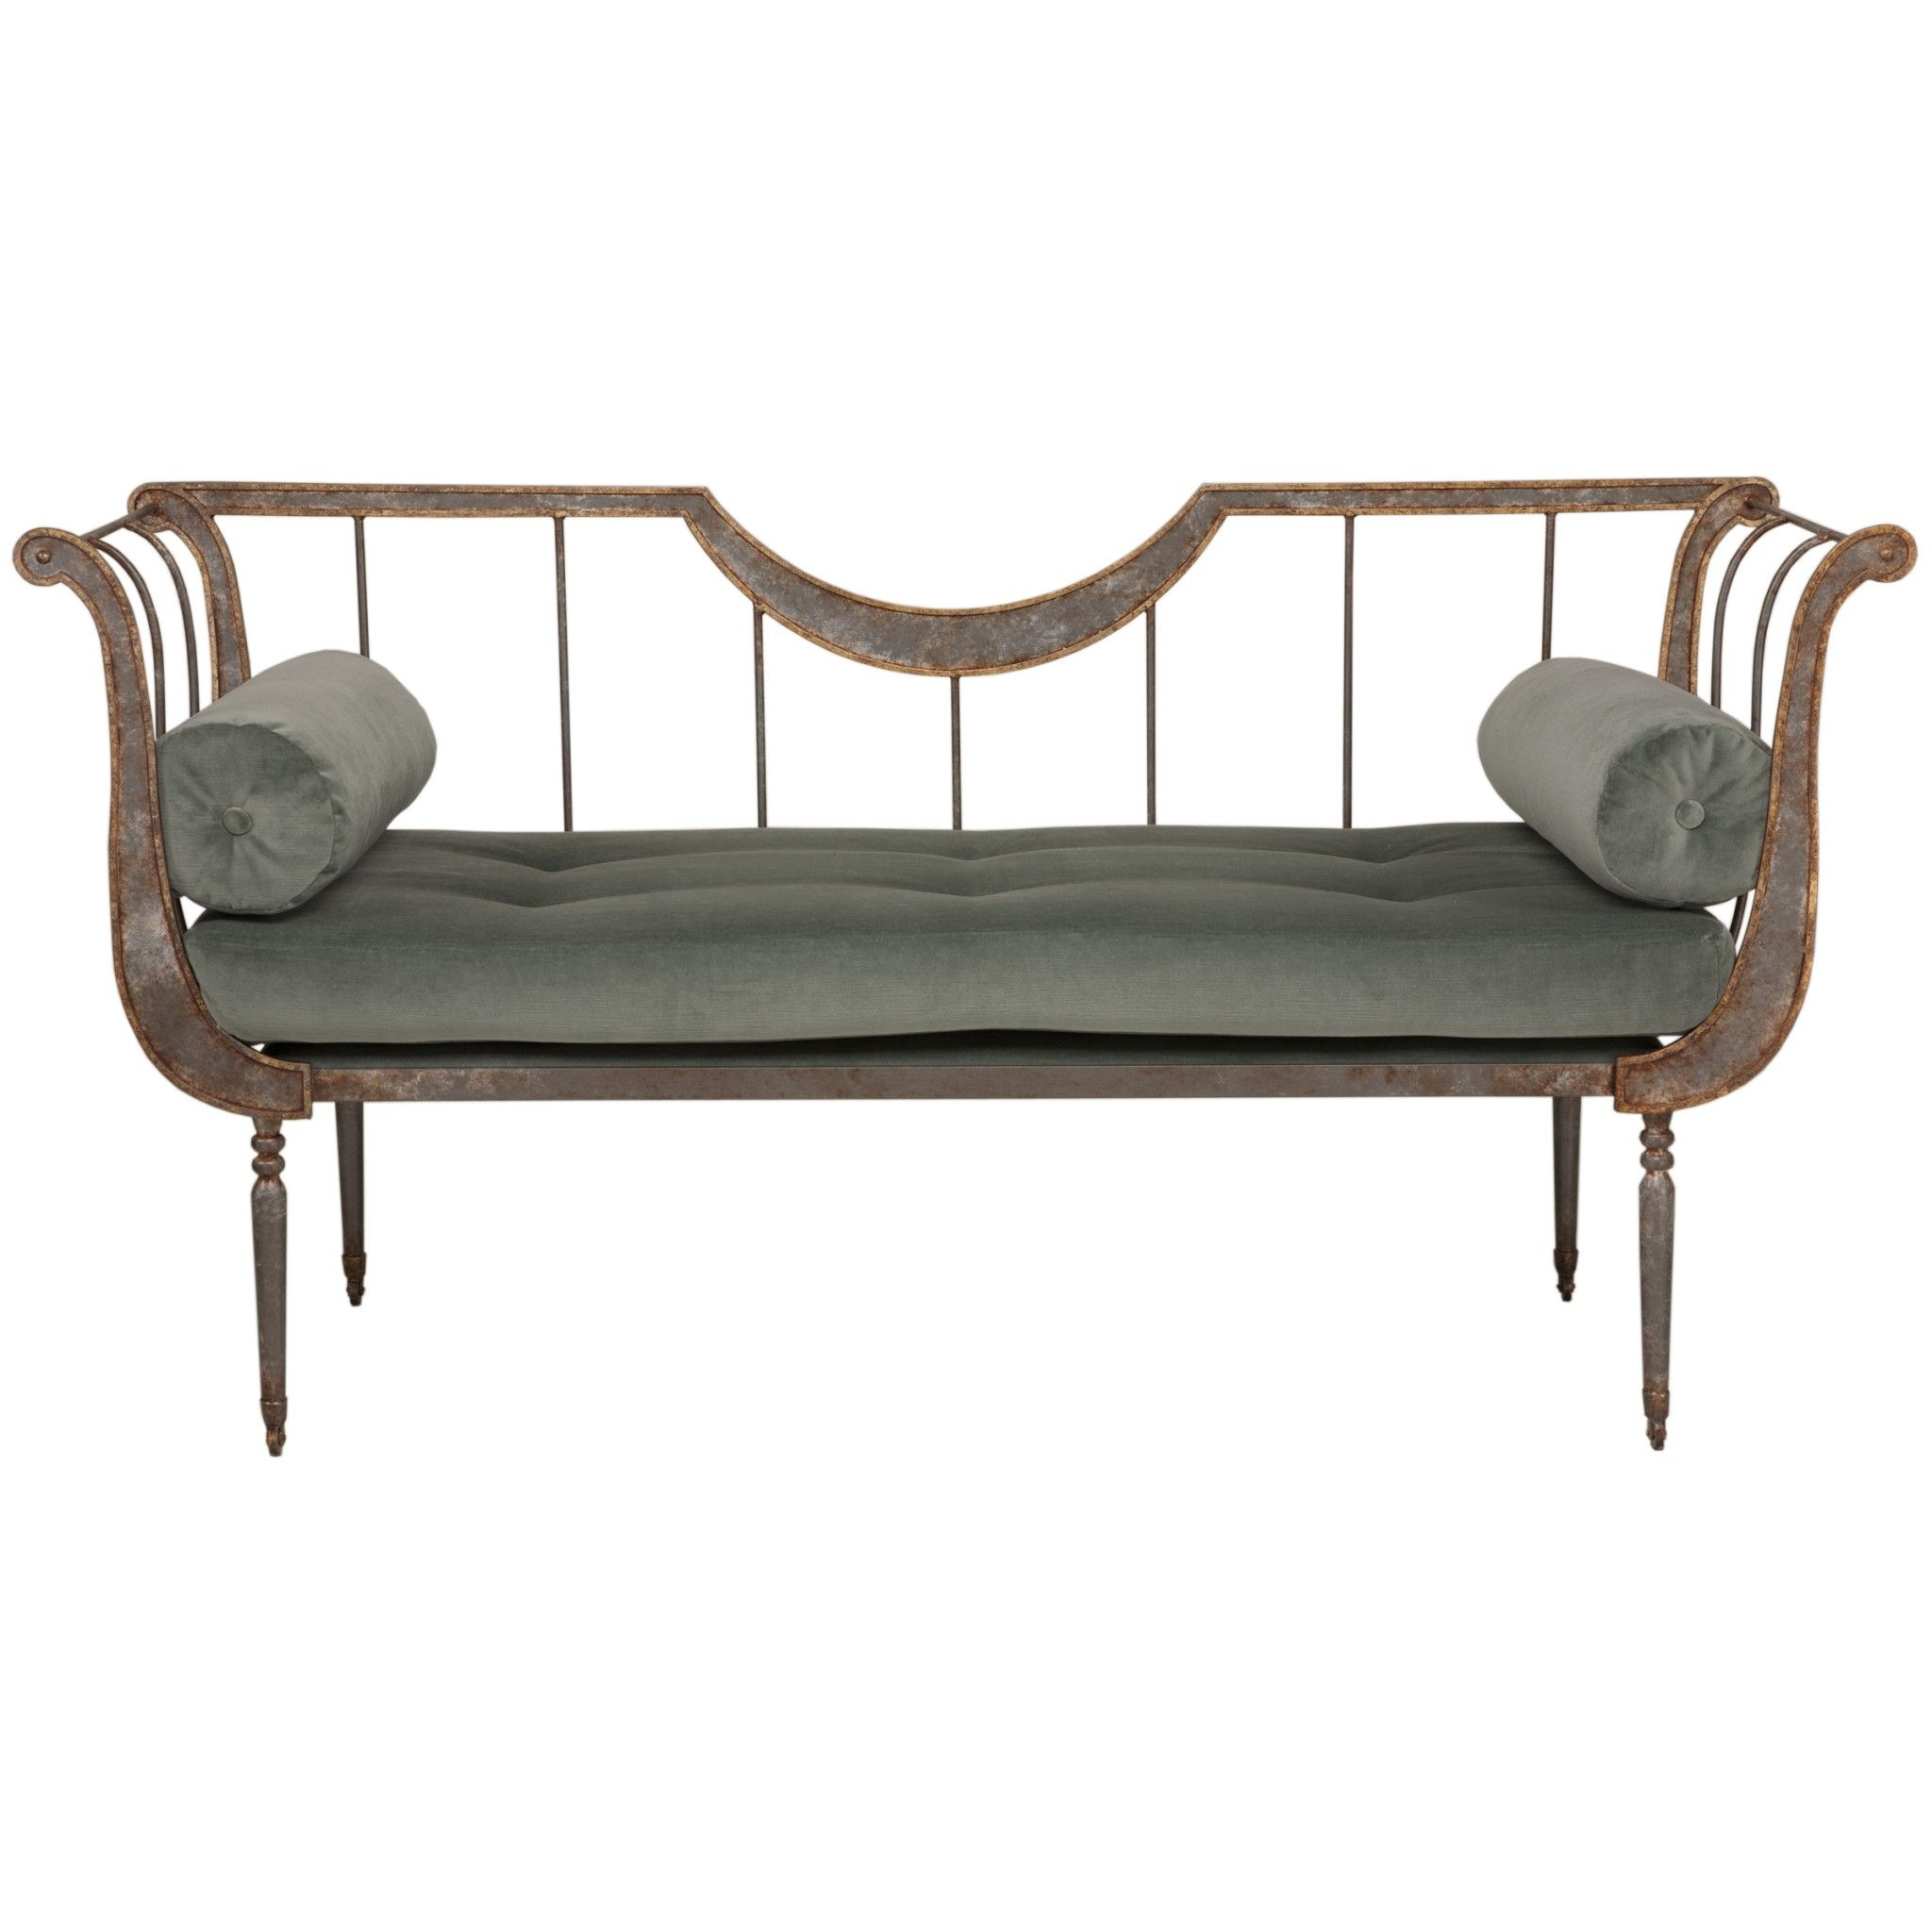 Buy Settees Online: Toulon Settee. Please Contact Avondale Design Studio For